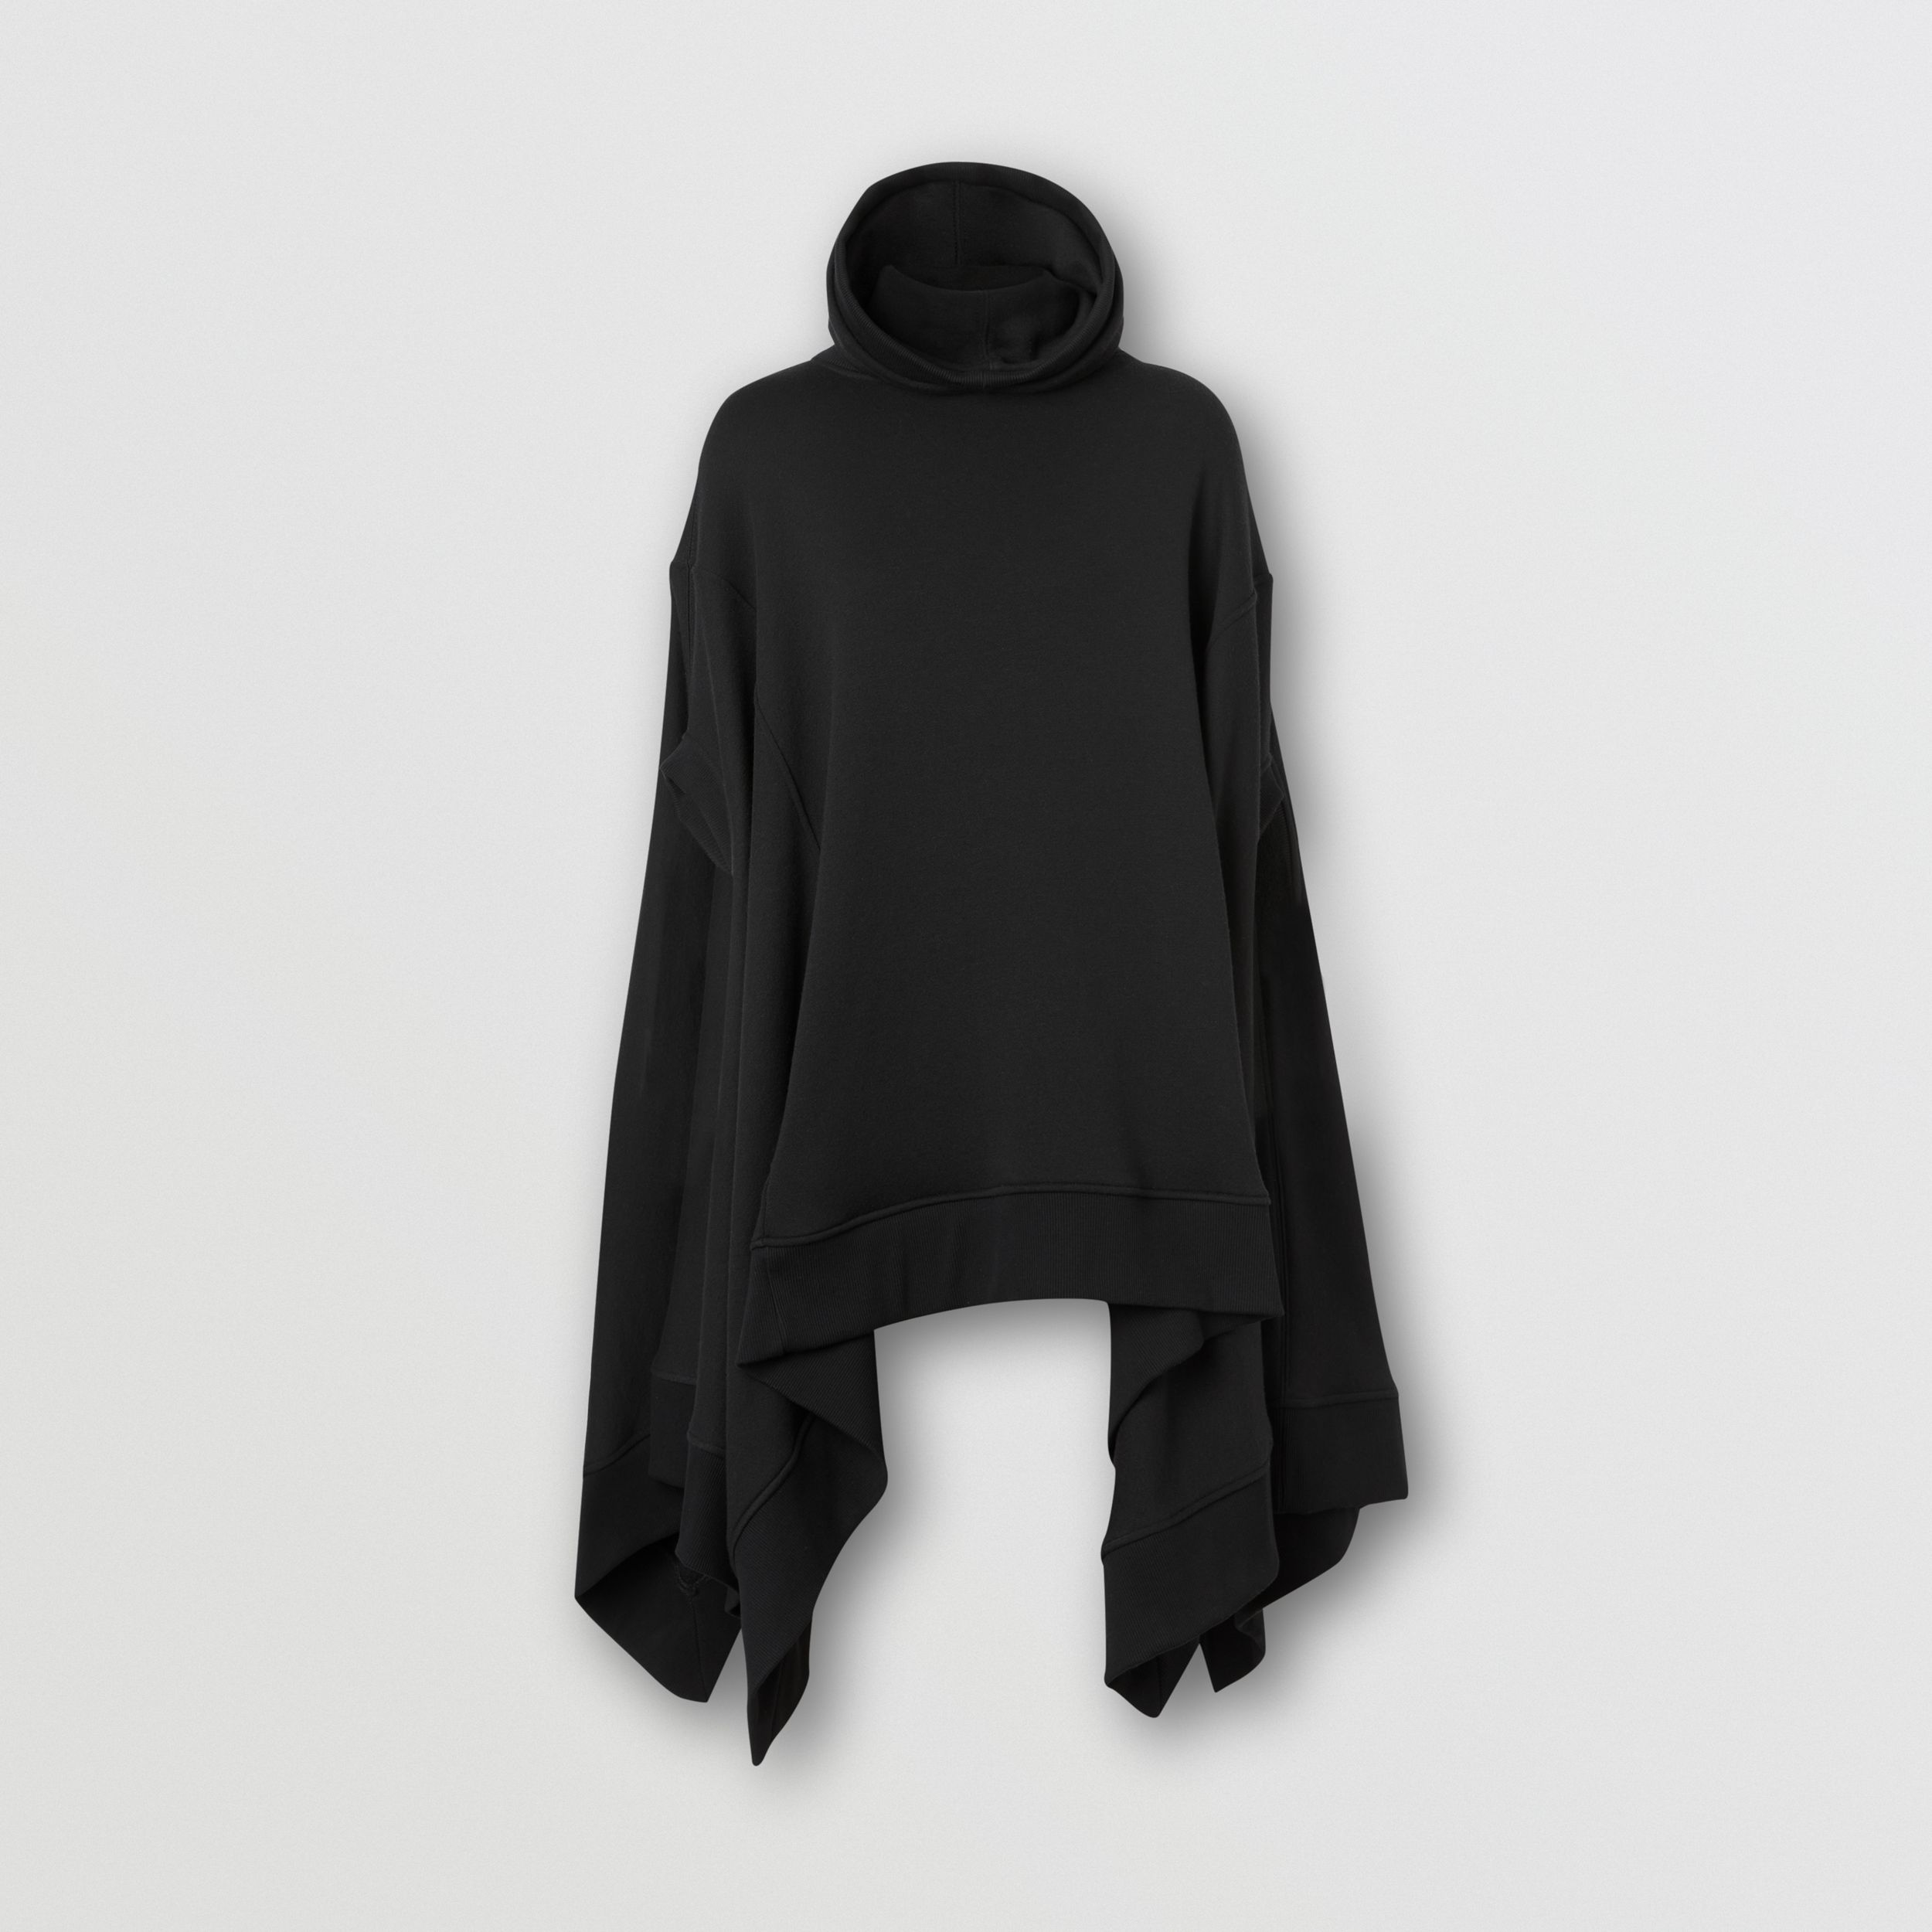 Cut-out Sleeve Jersey Hooded Cape in Black - Women | Burberry - 4